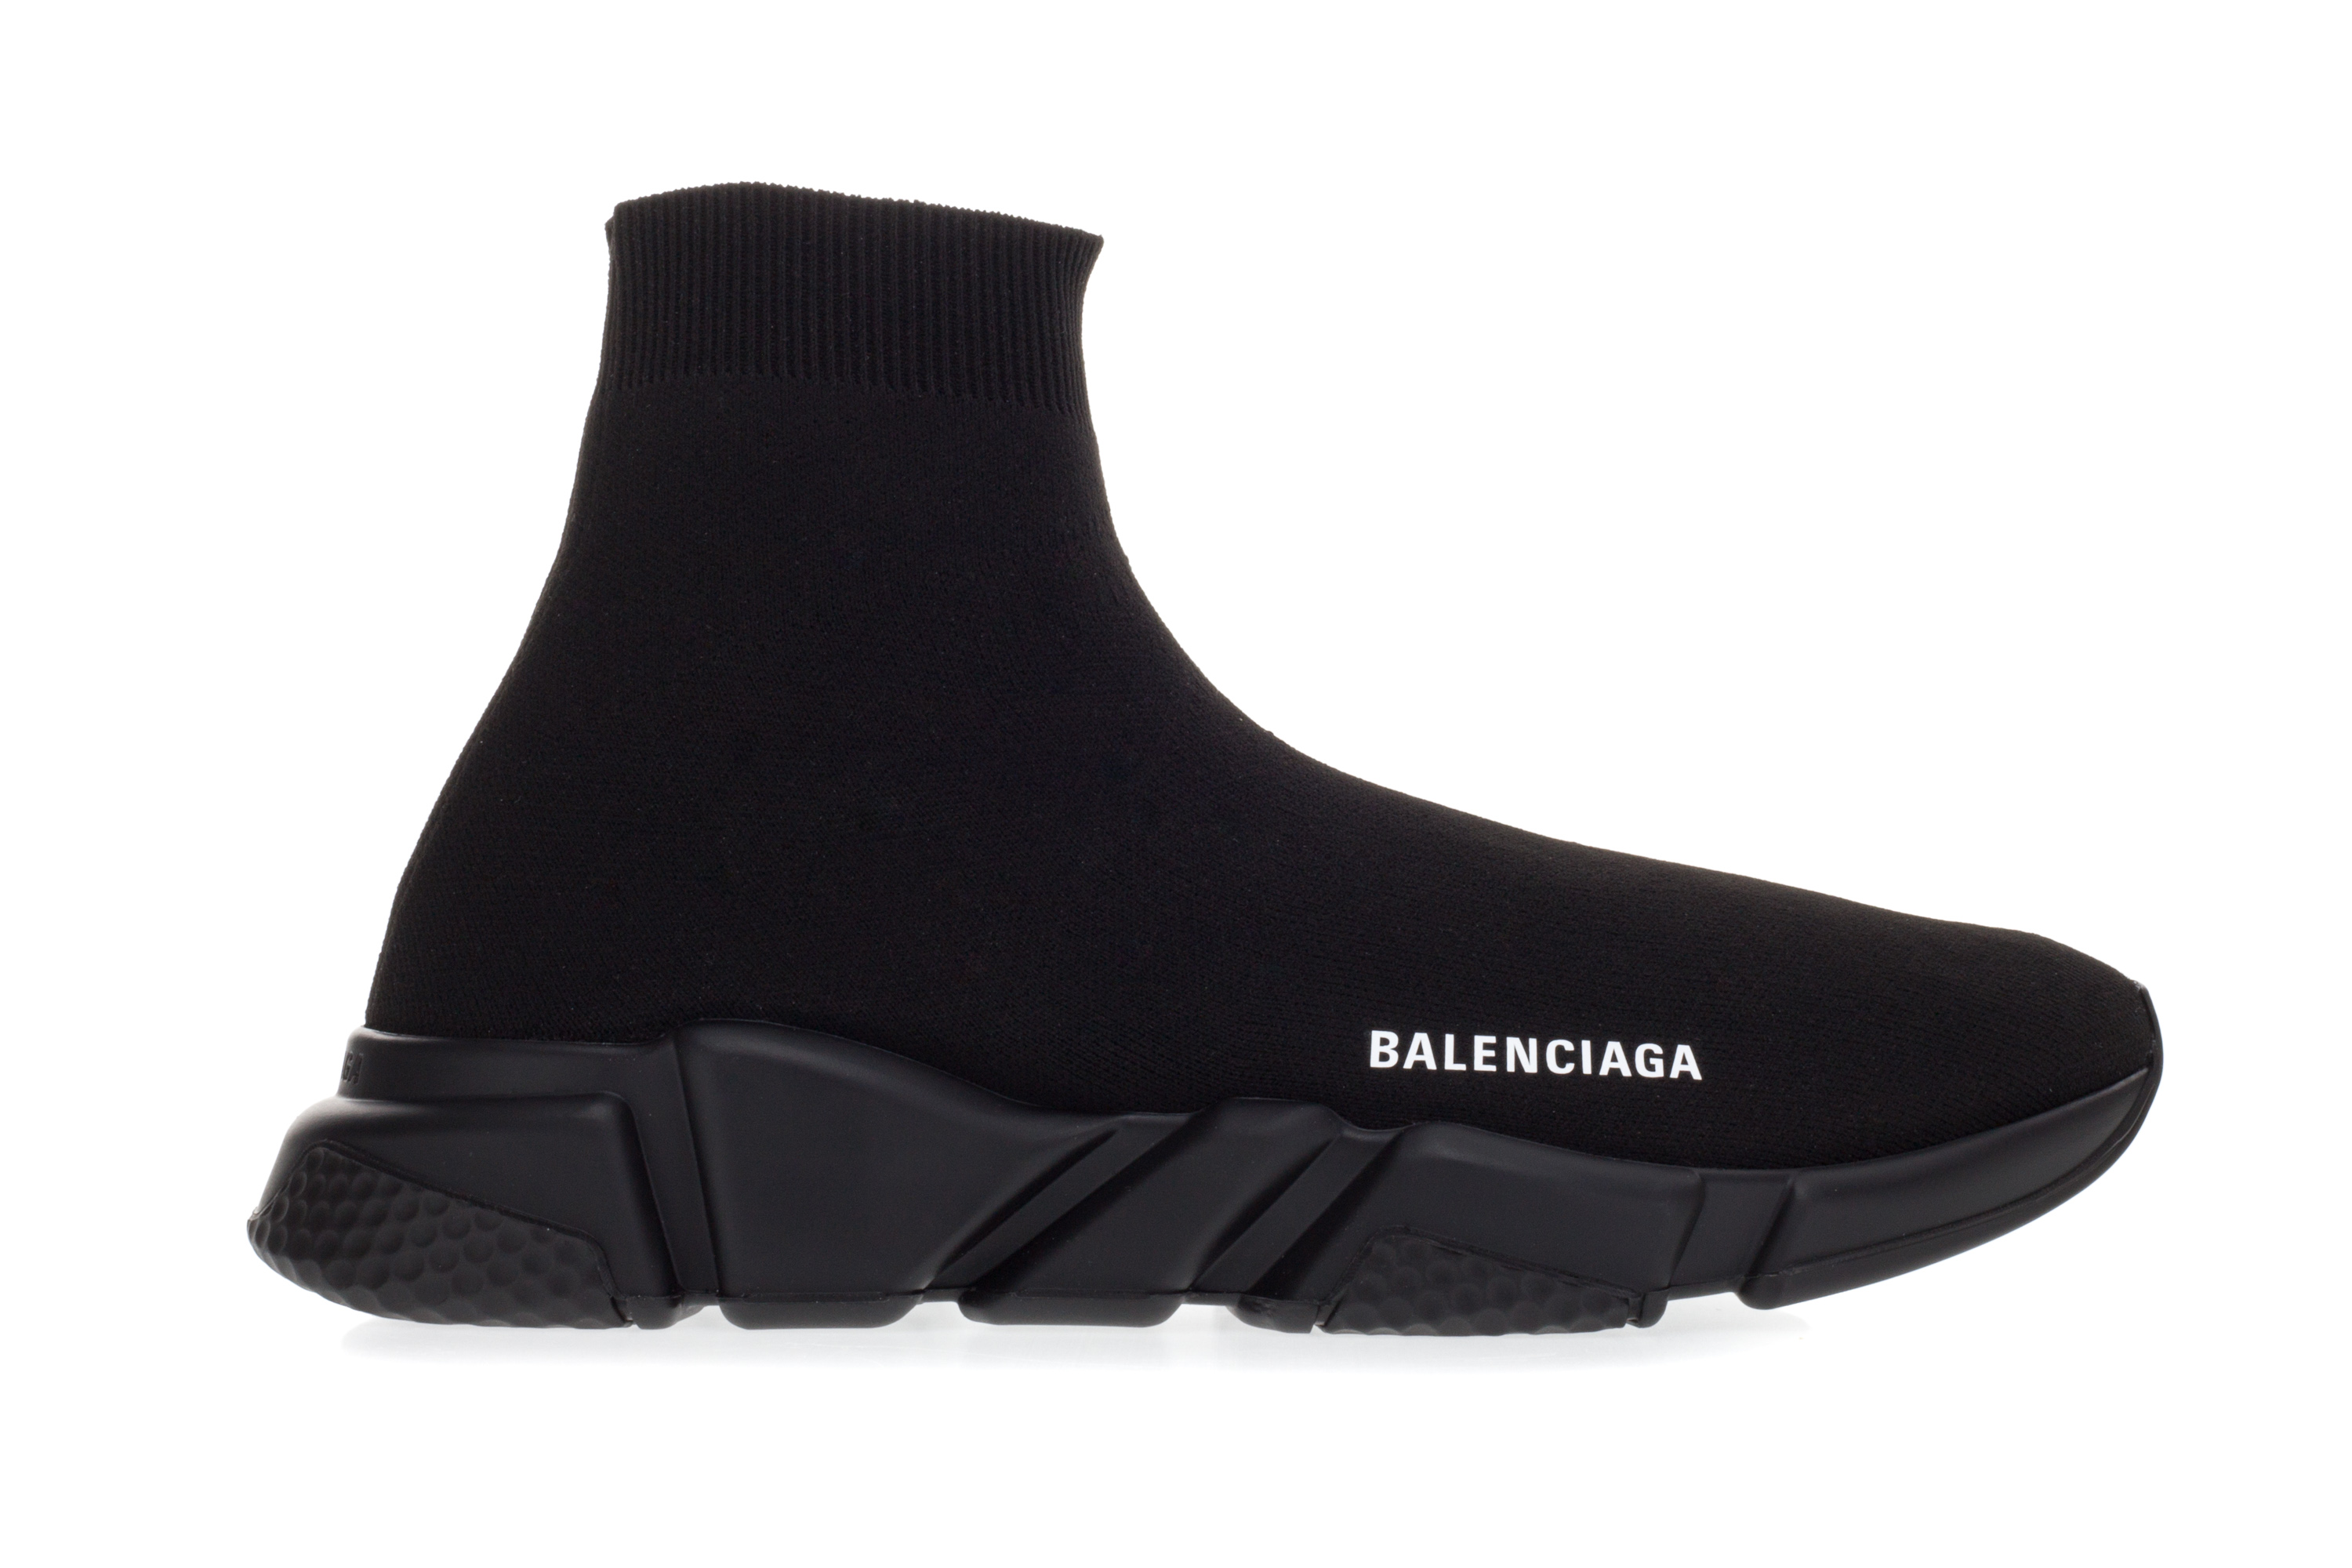 Balenciaga Speed Trainer Price in Rands